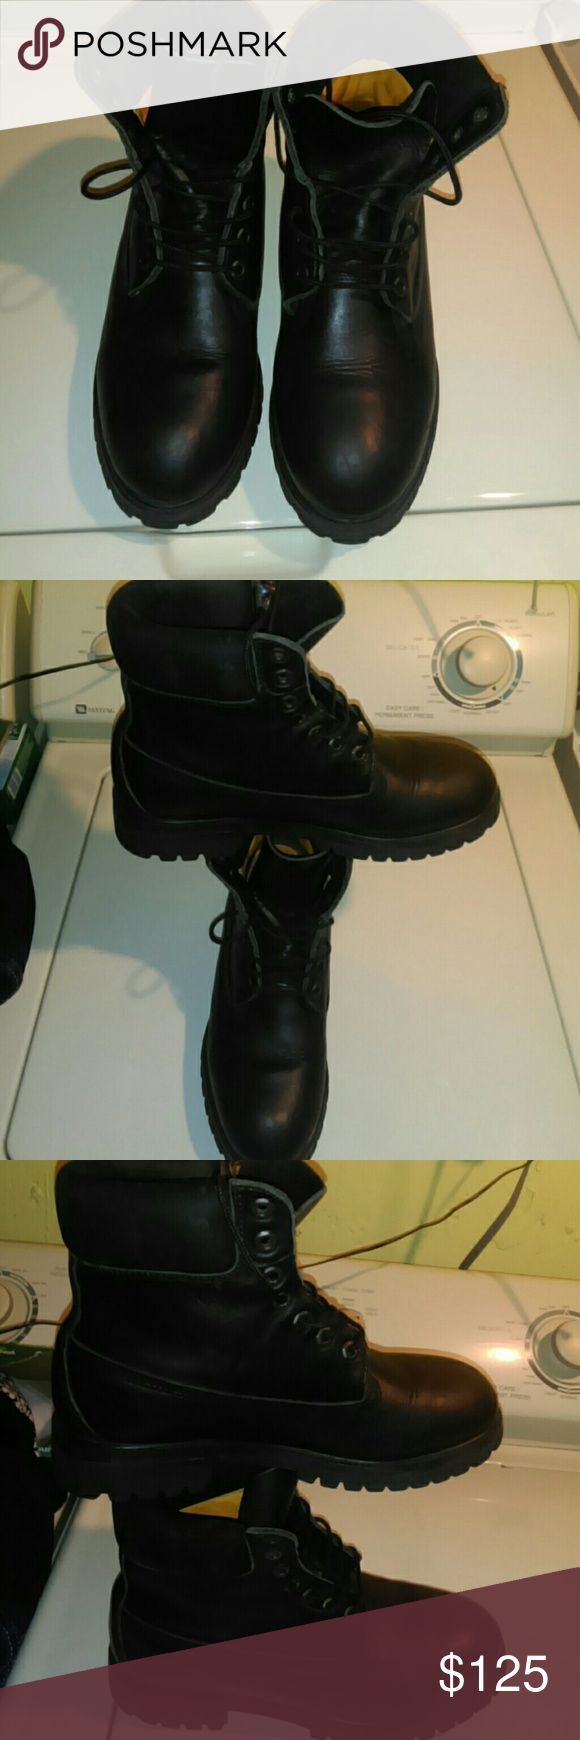 Timberland Boots Men's Gently used...leather....nice.!*.buy!*!* Timberland Shoes Boots